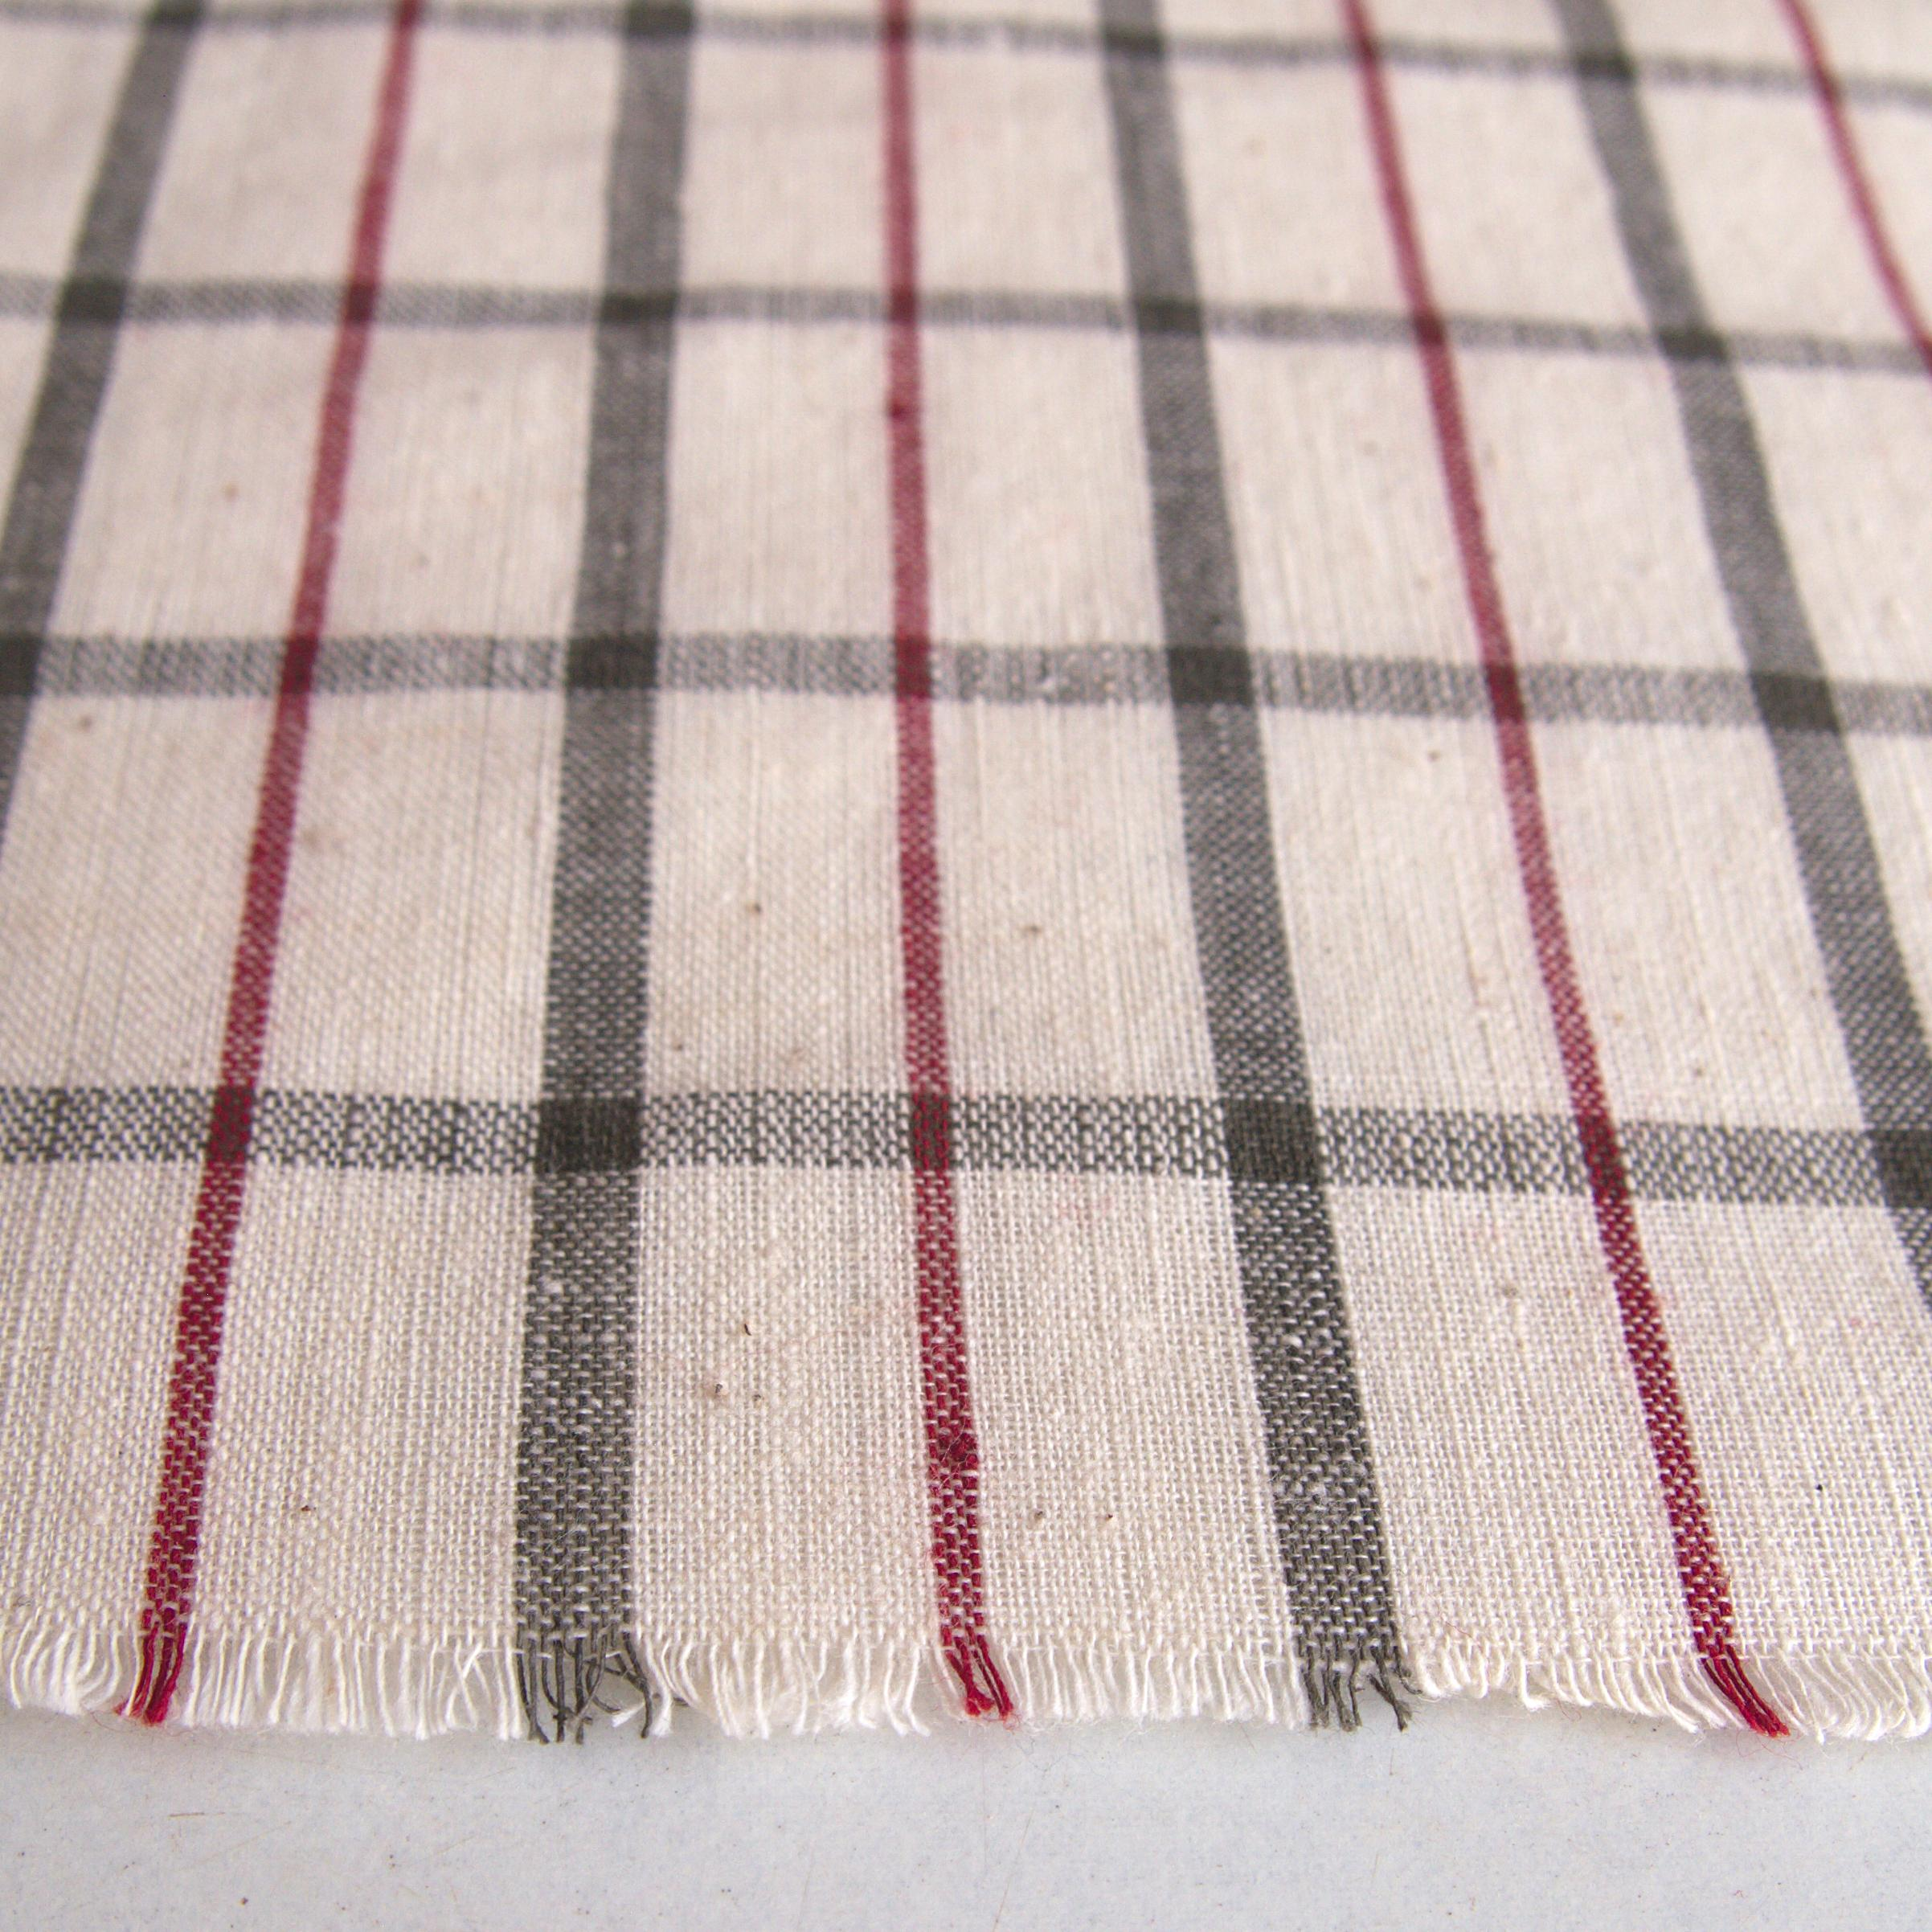 100% Handloom Woven Cotton - White Warp & Weft, Olive Green Warp & Weft, Alizarin Red Warp - Chequers - Close Up